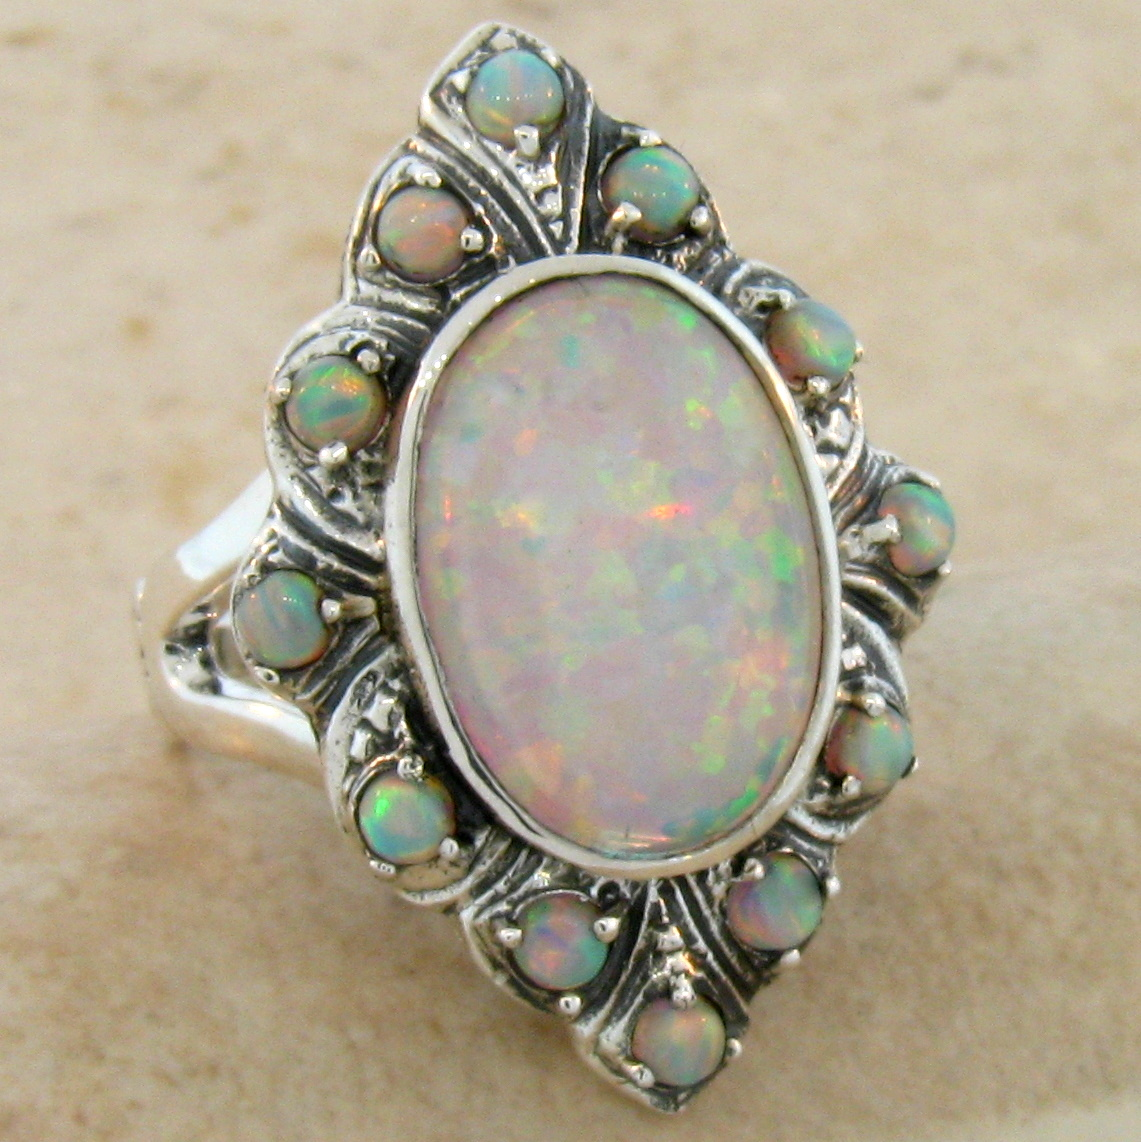 lab opal antique victorian design 925 sterling silver